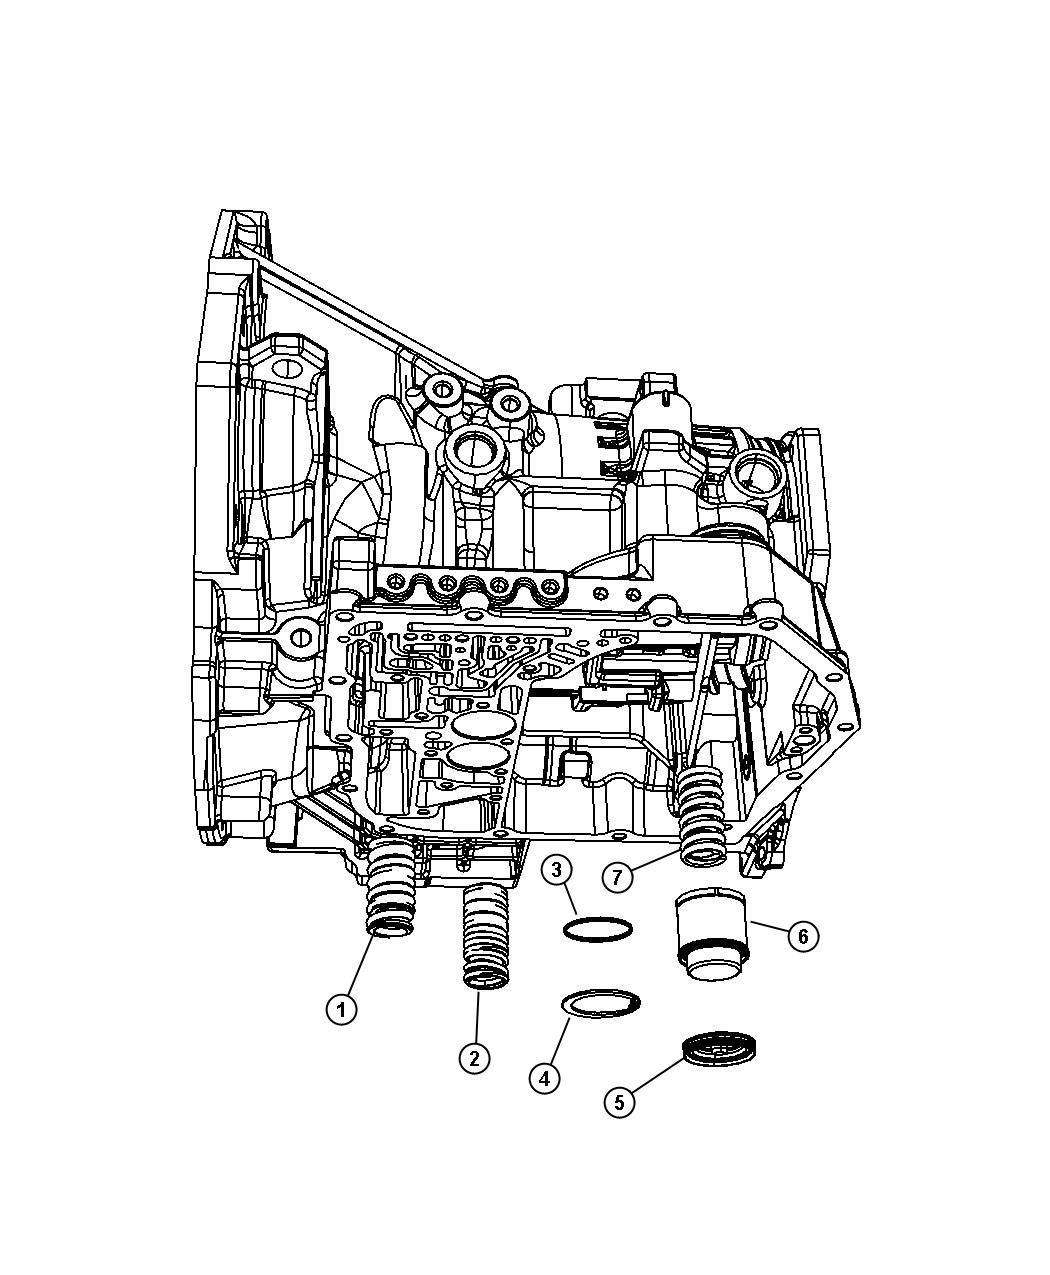 Dodge Avenger Piston. Accumulator, used for: 2nd and 4th